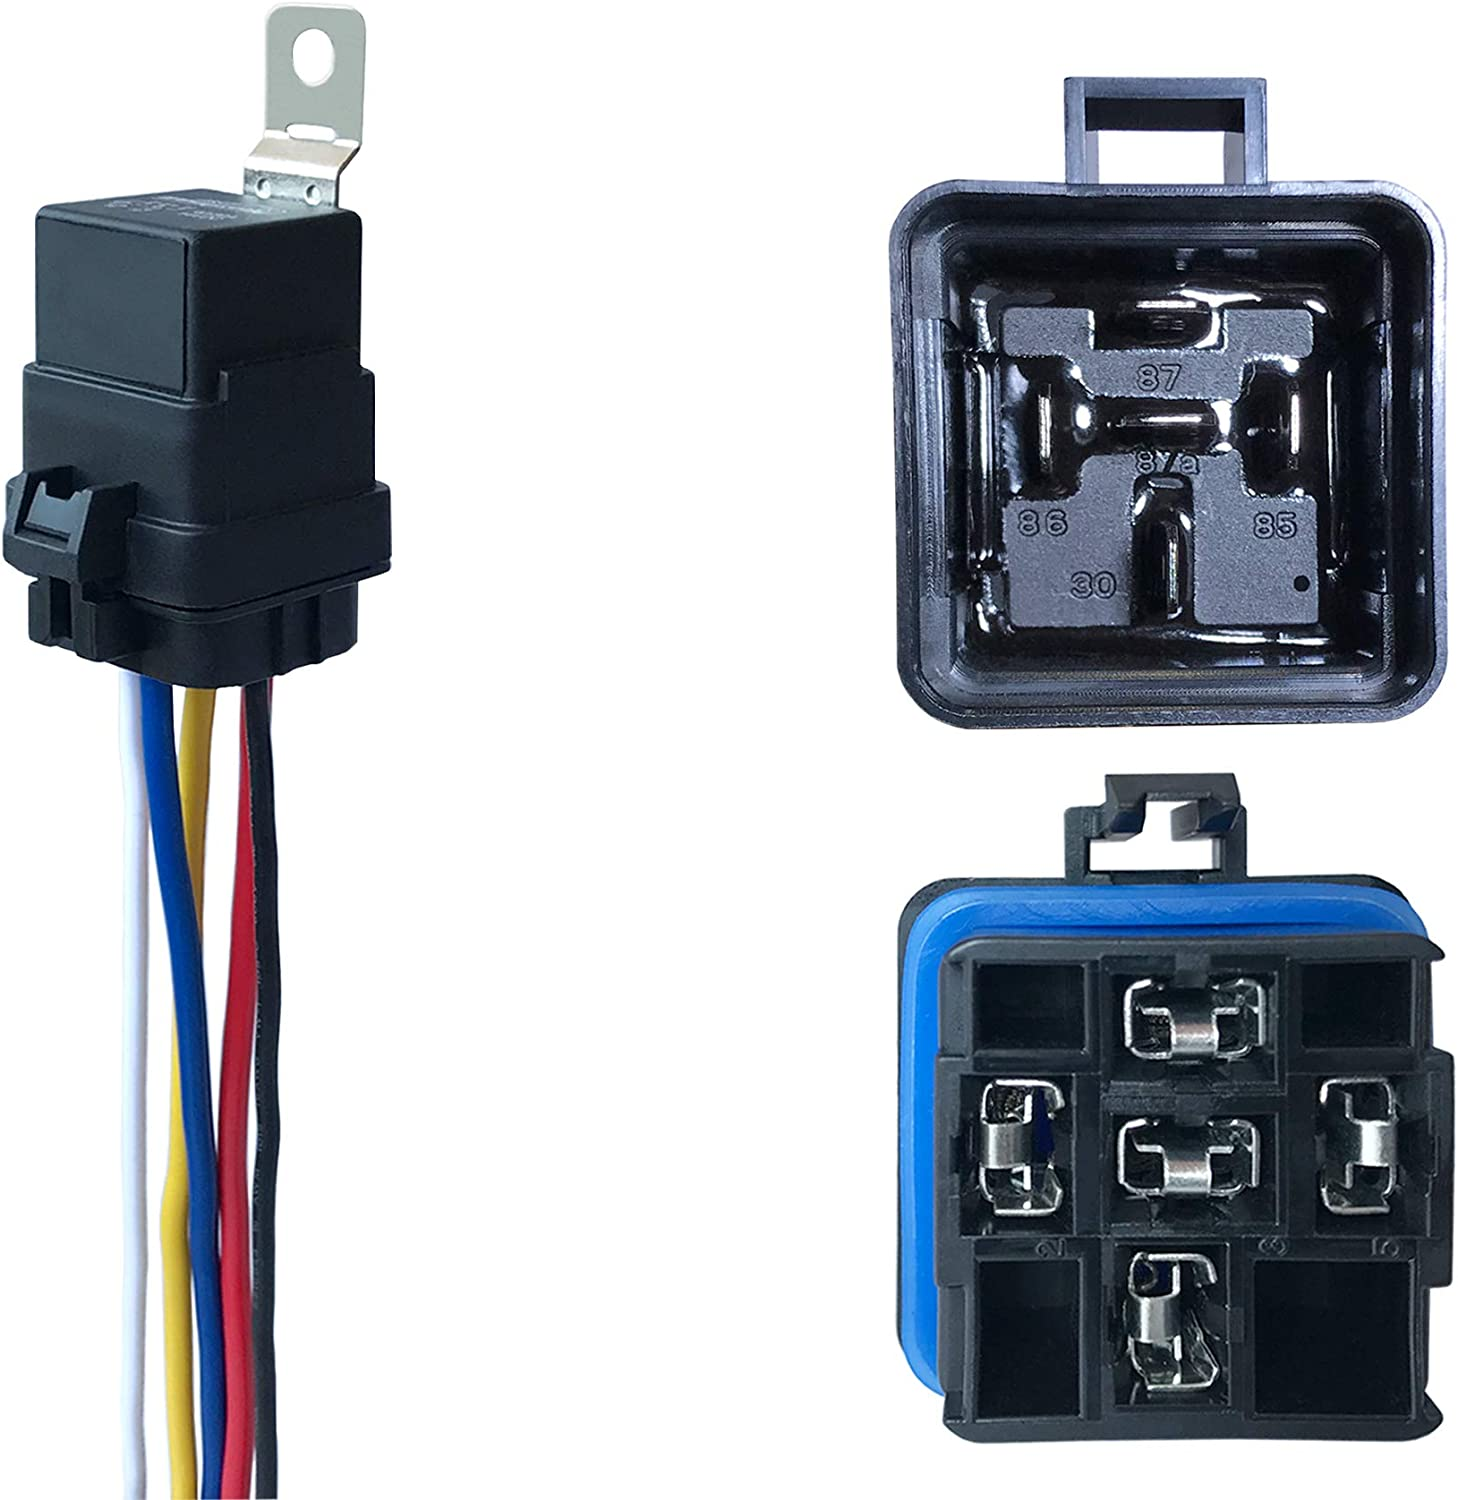 Amazon.com: 1 Pack 40/30 AMP 12 V DC Waterproof Relay and Harness - Heavy  Duty 12 AWG Tinned Copper Wires, 5-PIN SPDT Bosch Style Automotive Relay:  Industrial & ScientificAmazon.com